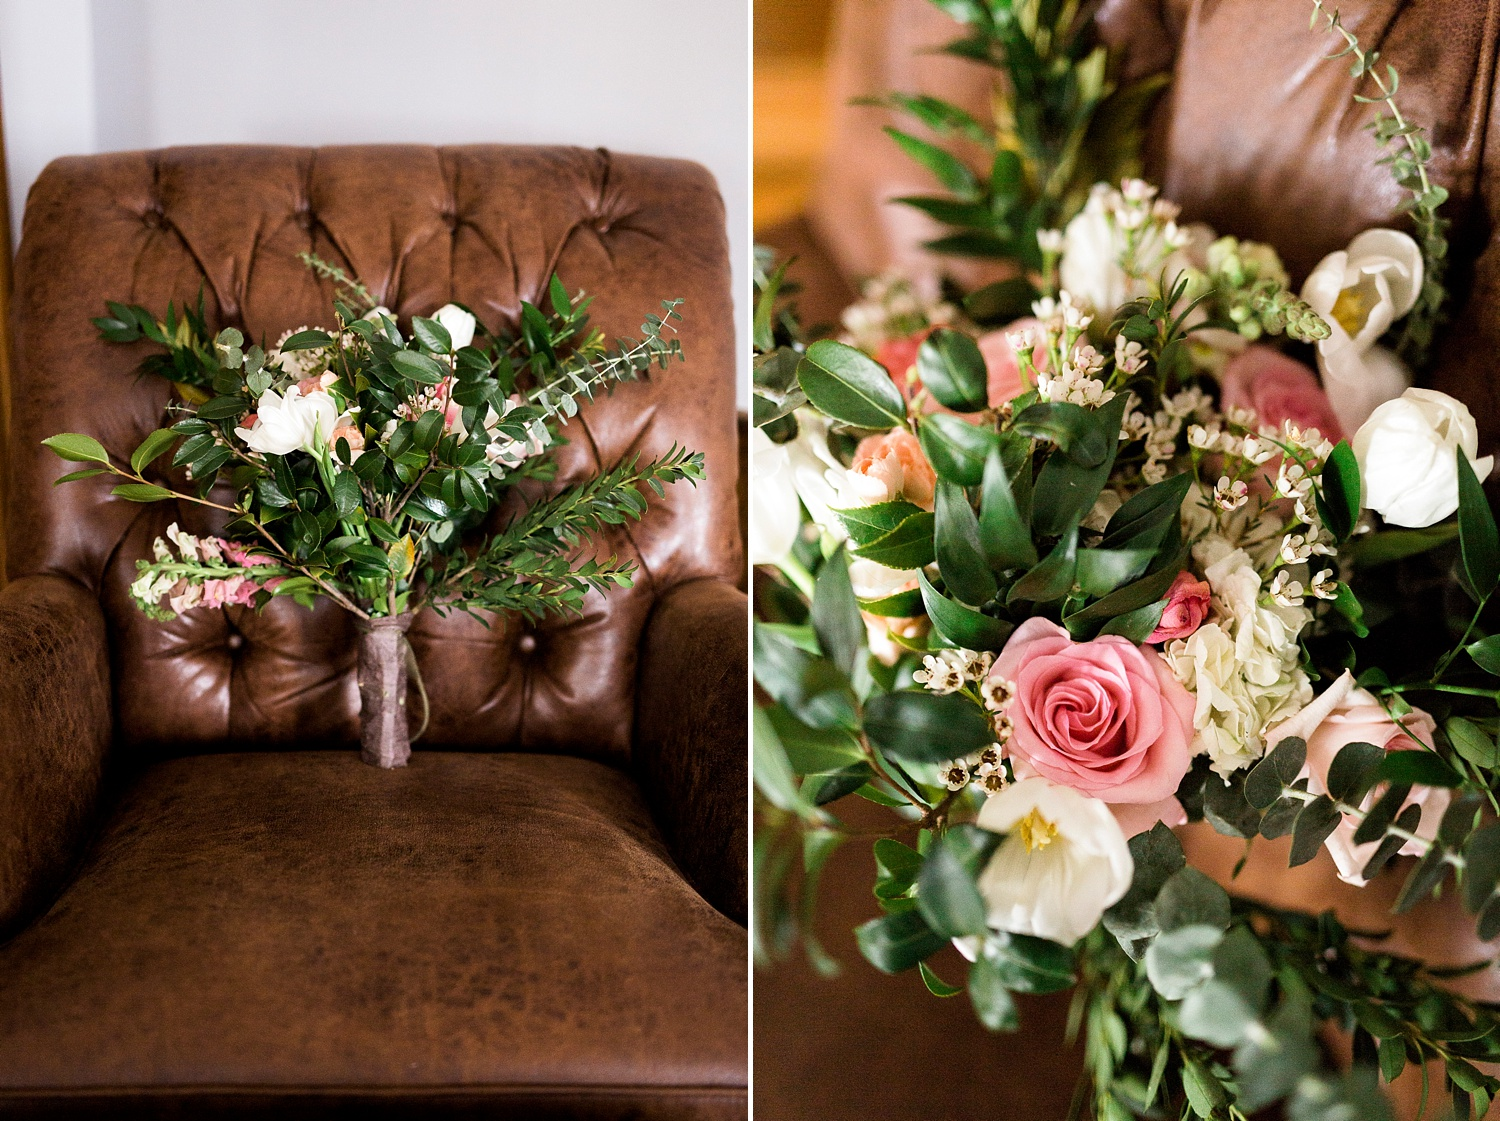 bride's bouquet rests in a weathered leather chair